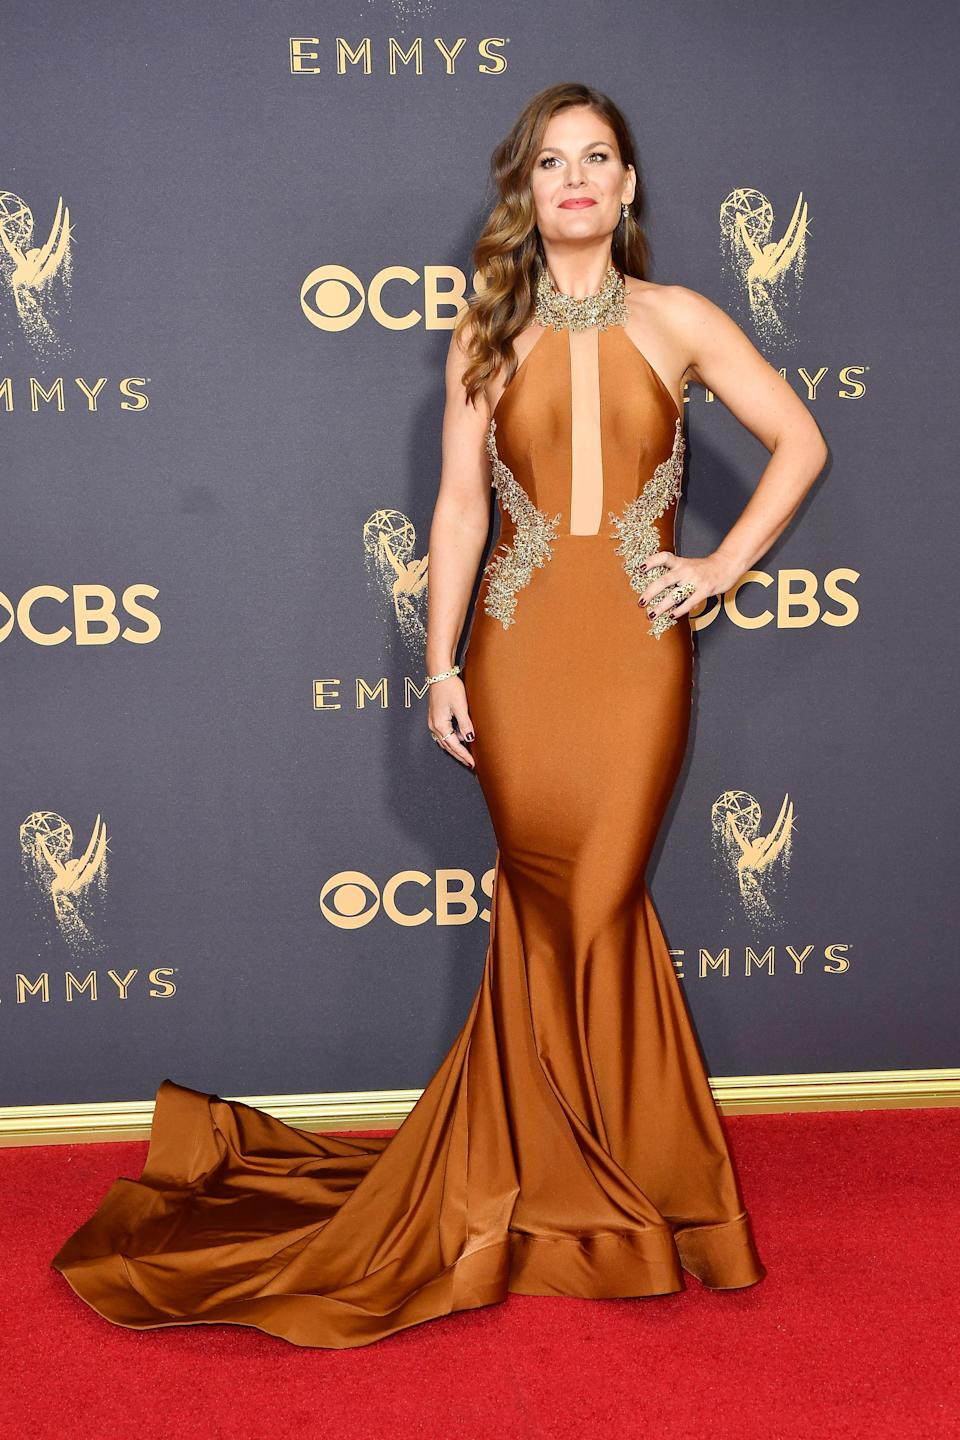 <p>Kristin dos Santos attends the 69th Primetime Emmy Awards at the Microsoft Theater on Sept. 17, 2017, in Los Angeles. (Photo: Getty Images) </p>